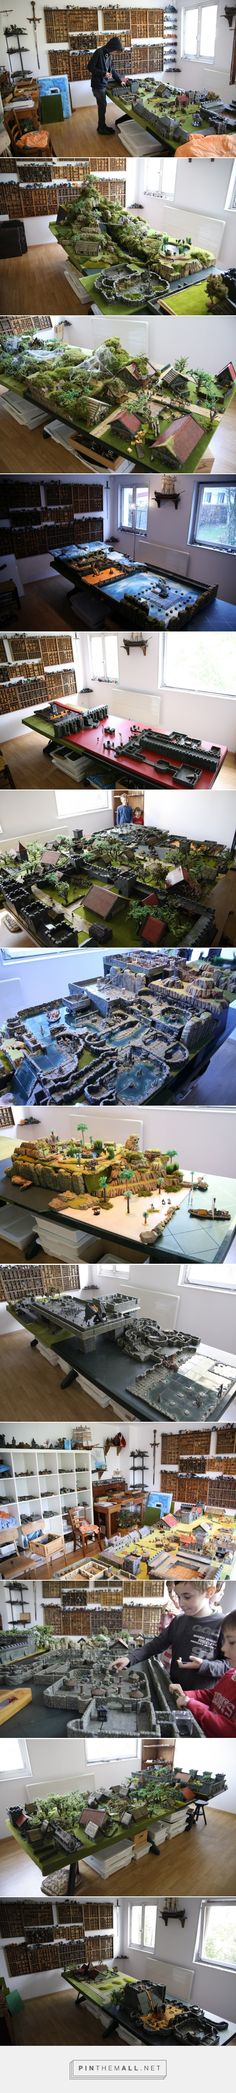 Gaming room, Salle de jeu de role, dwarvenforge.info - created via http://pinthemall.net